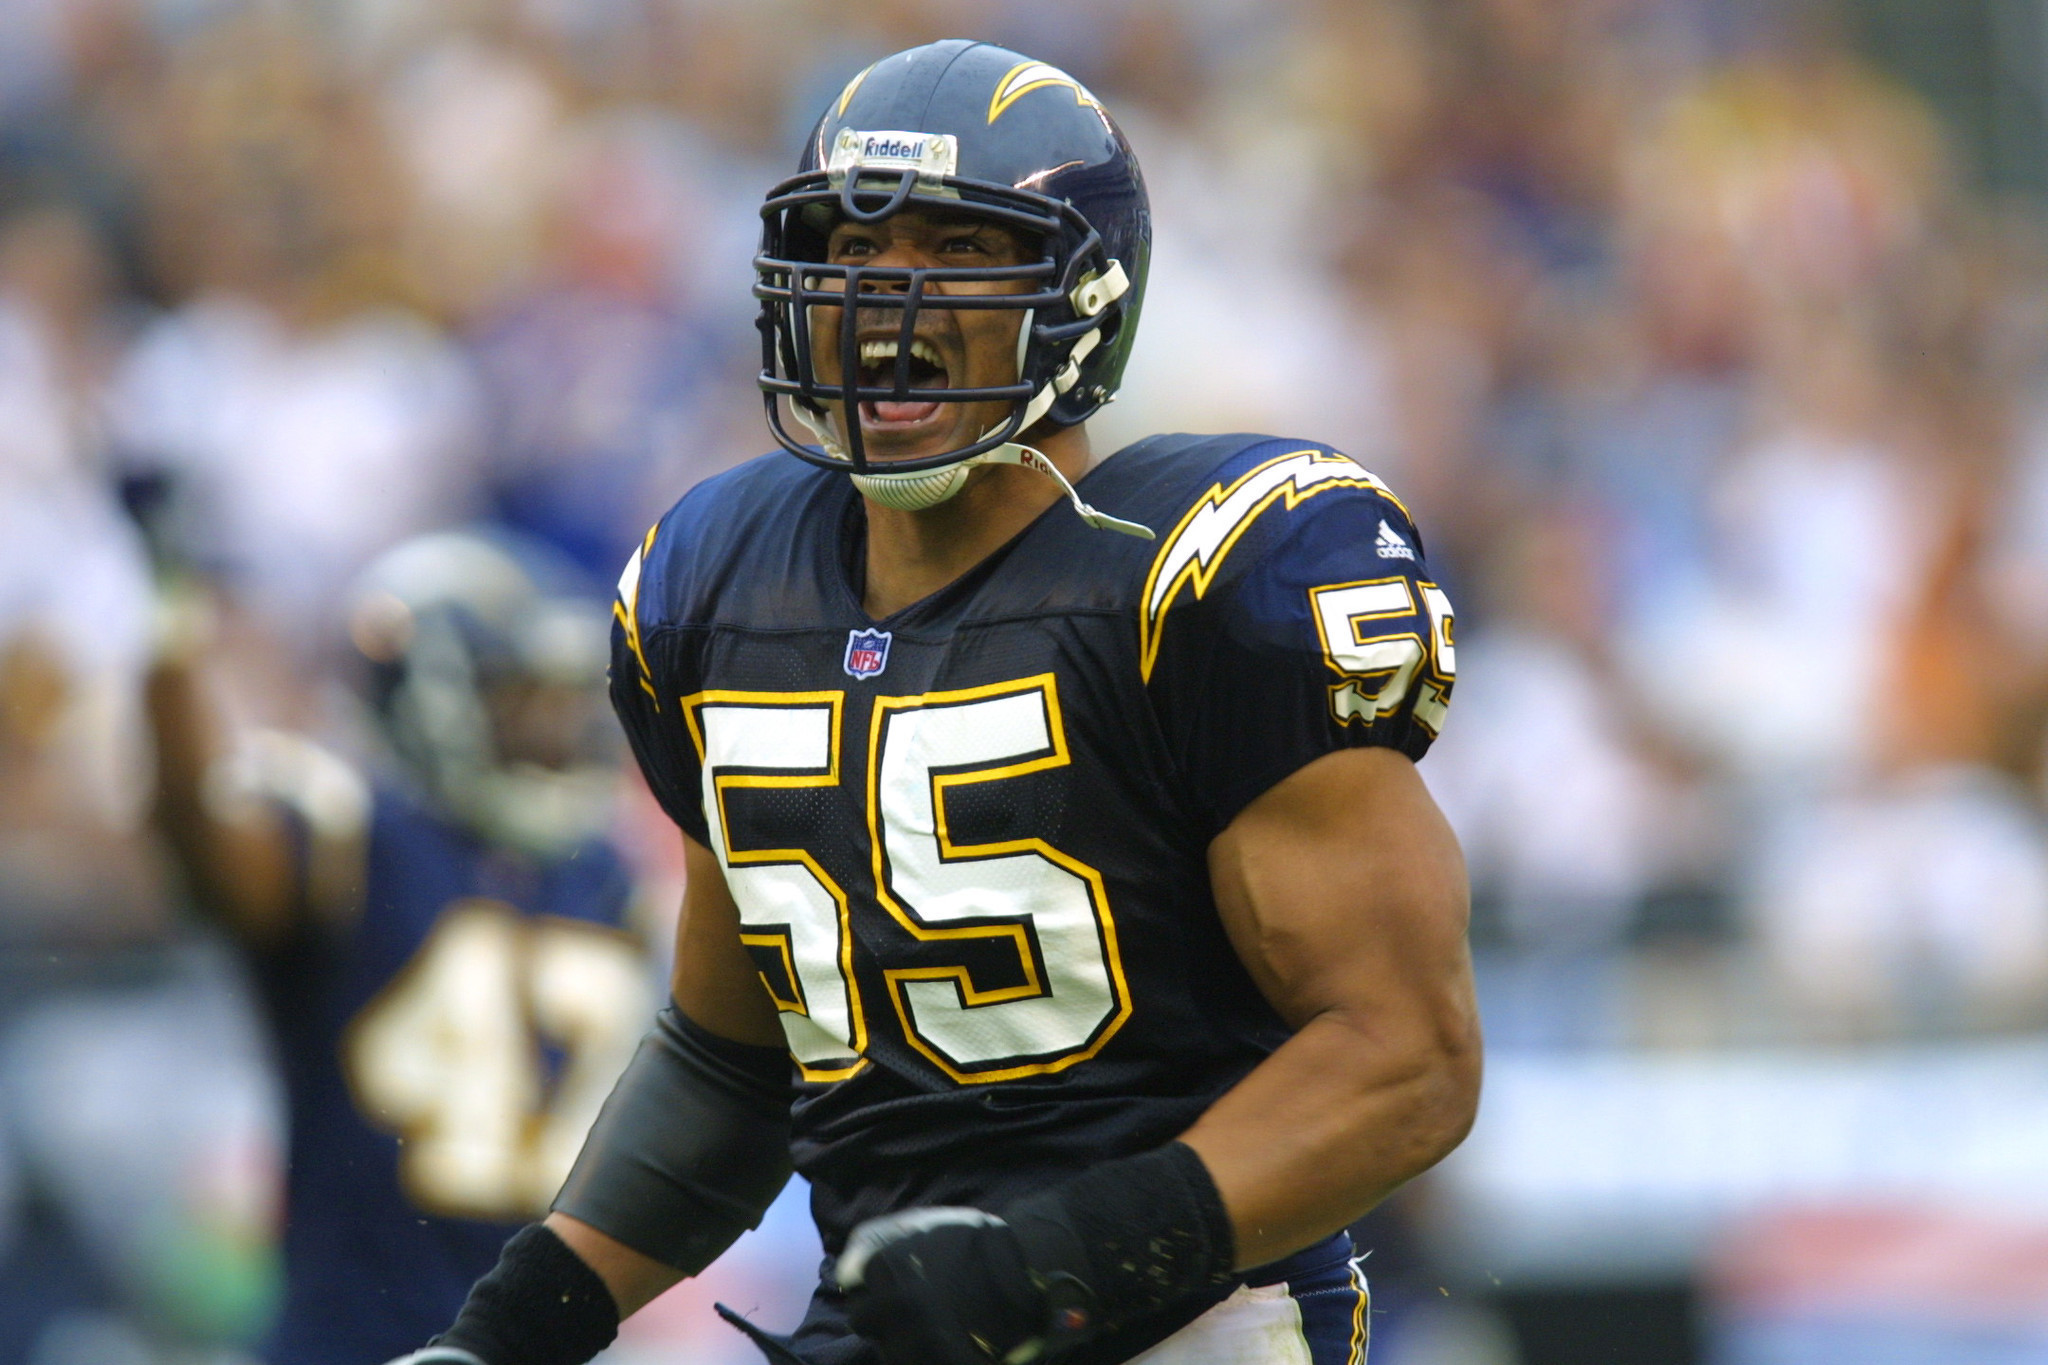 From Junior Seau S Death Advances In Brain Science